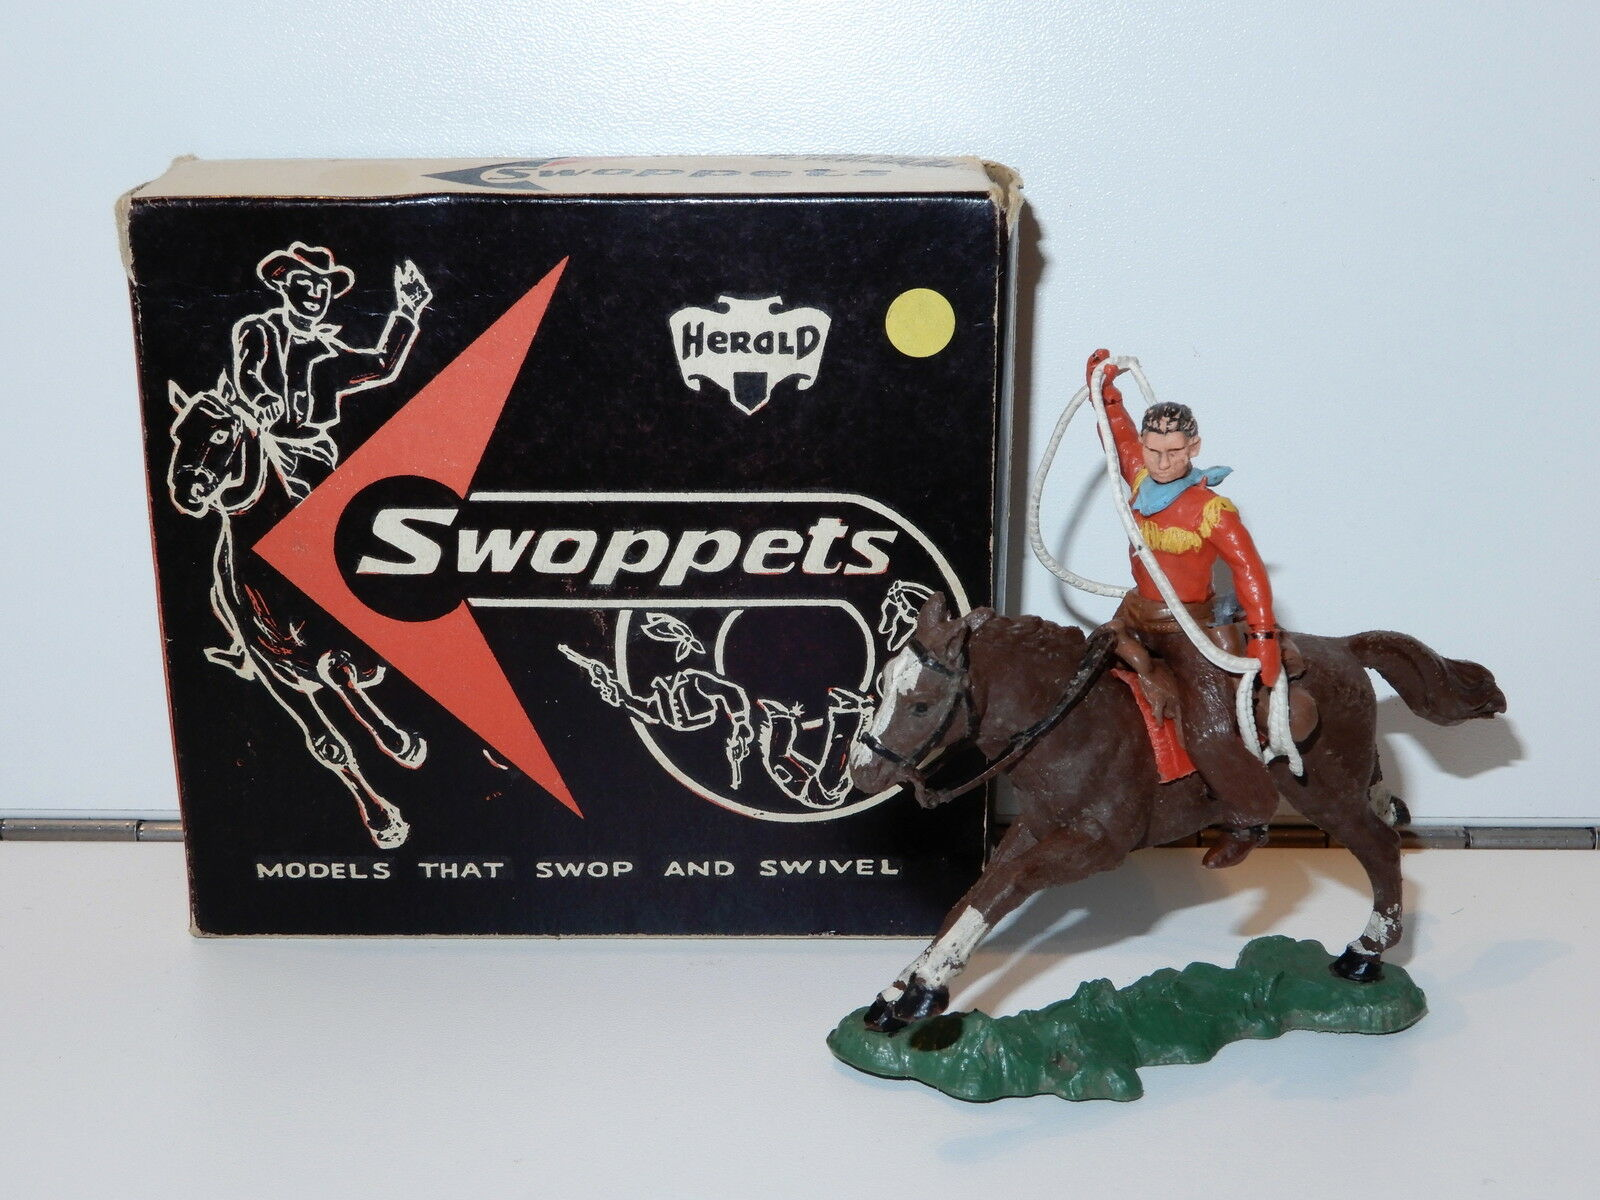 Country swoppets cowboys & indianer   632 h632 montiert cowboy w   lasso mib 60er